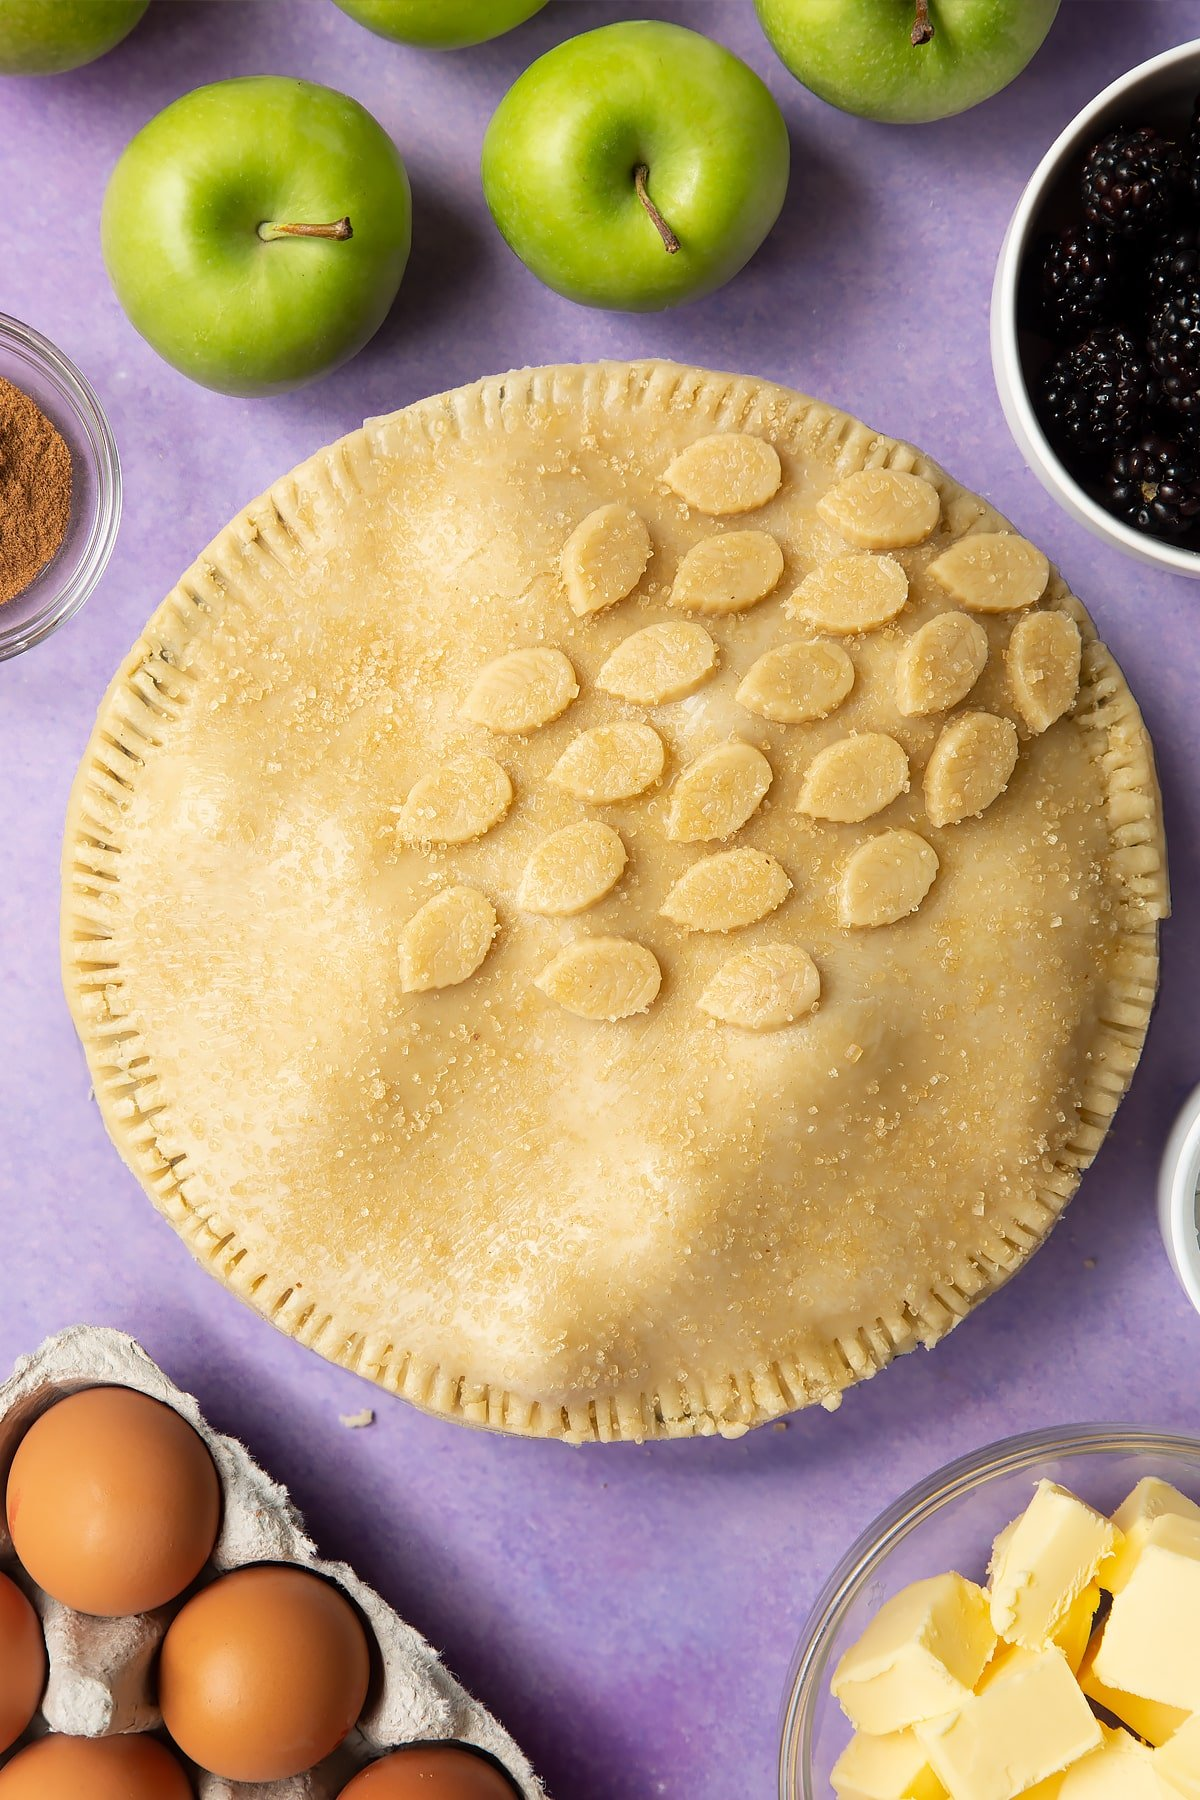 A raw apple and blackberry pie in a tin. The top has been brushed with egg white, decorated with pastry leaves and sprinkled with sugar.